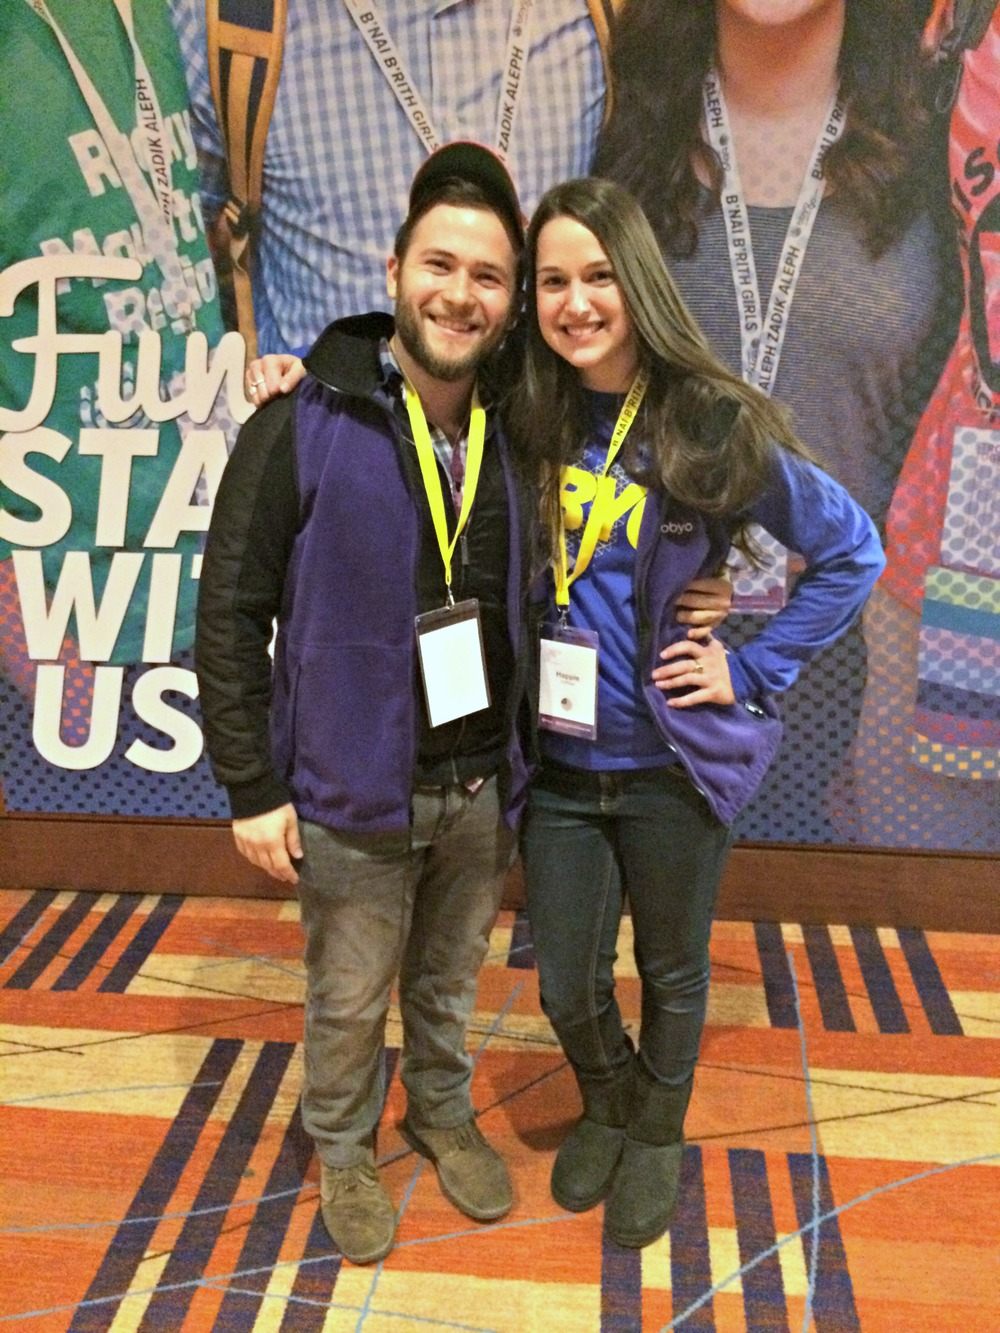 Songleaders Eric Hunker and Happie Hoffman sporting the purple staff vests. Have a question? Find anyone wearing them!